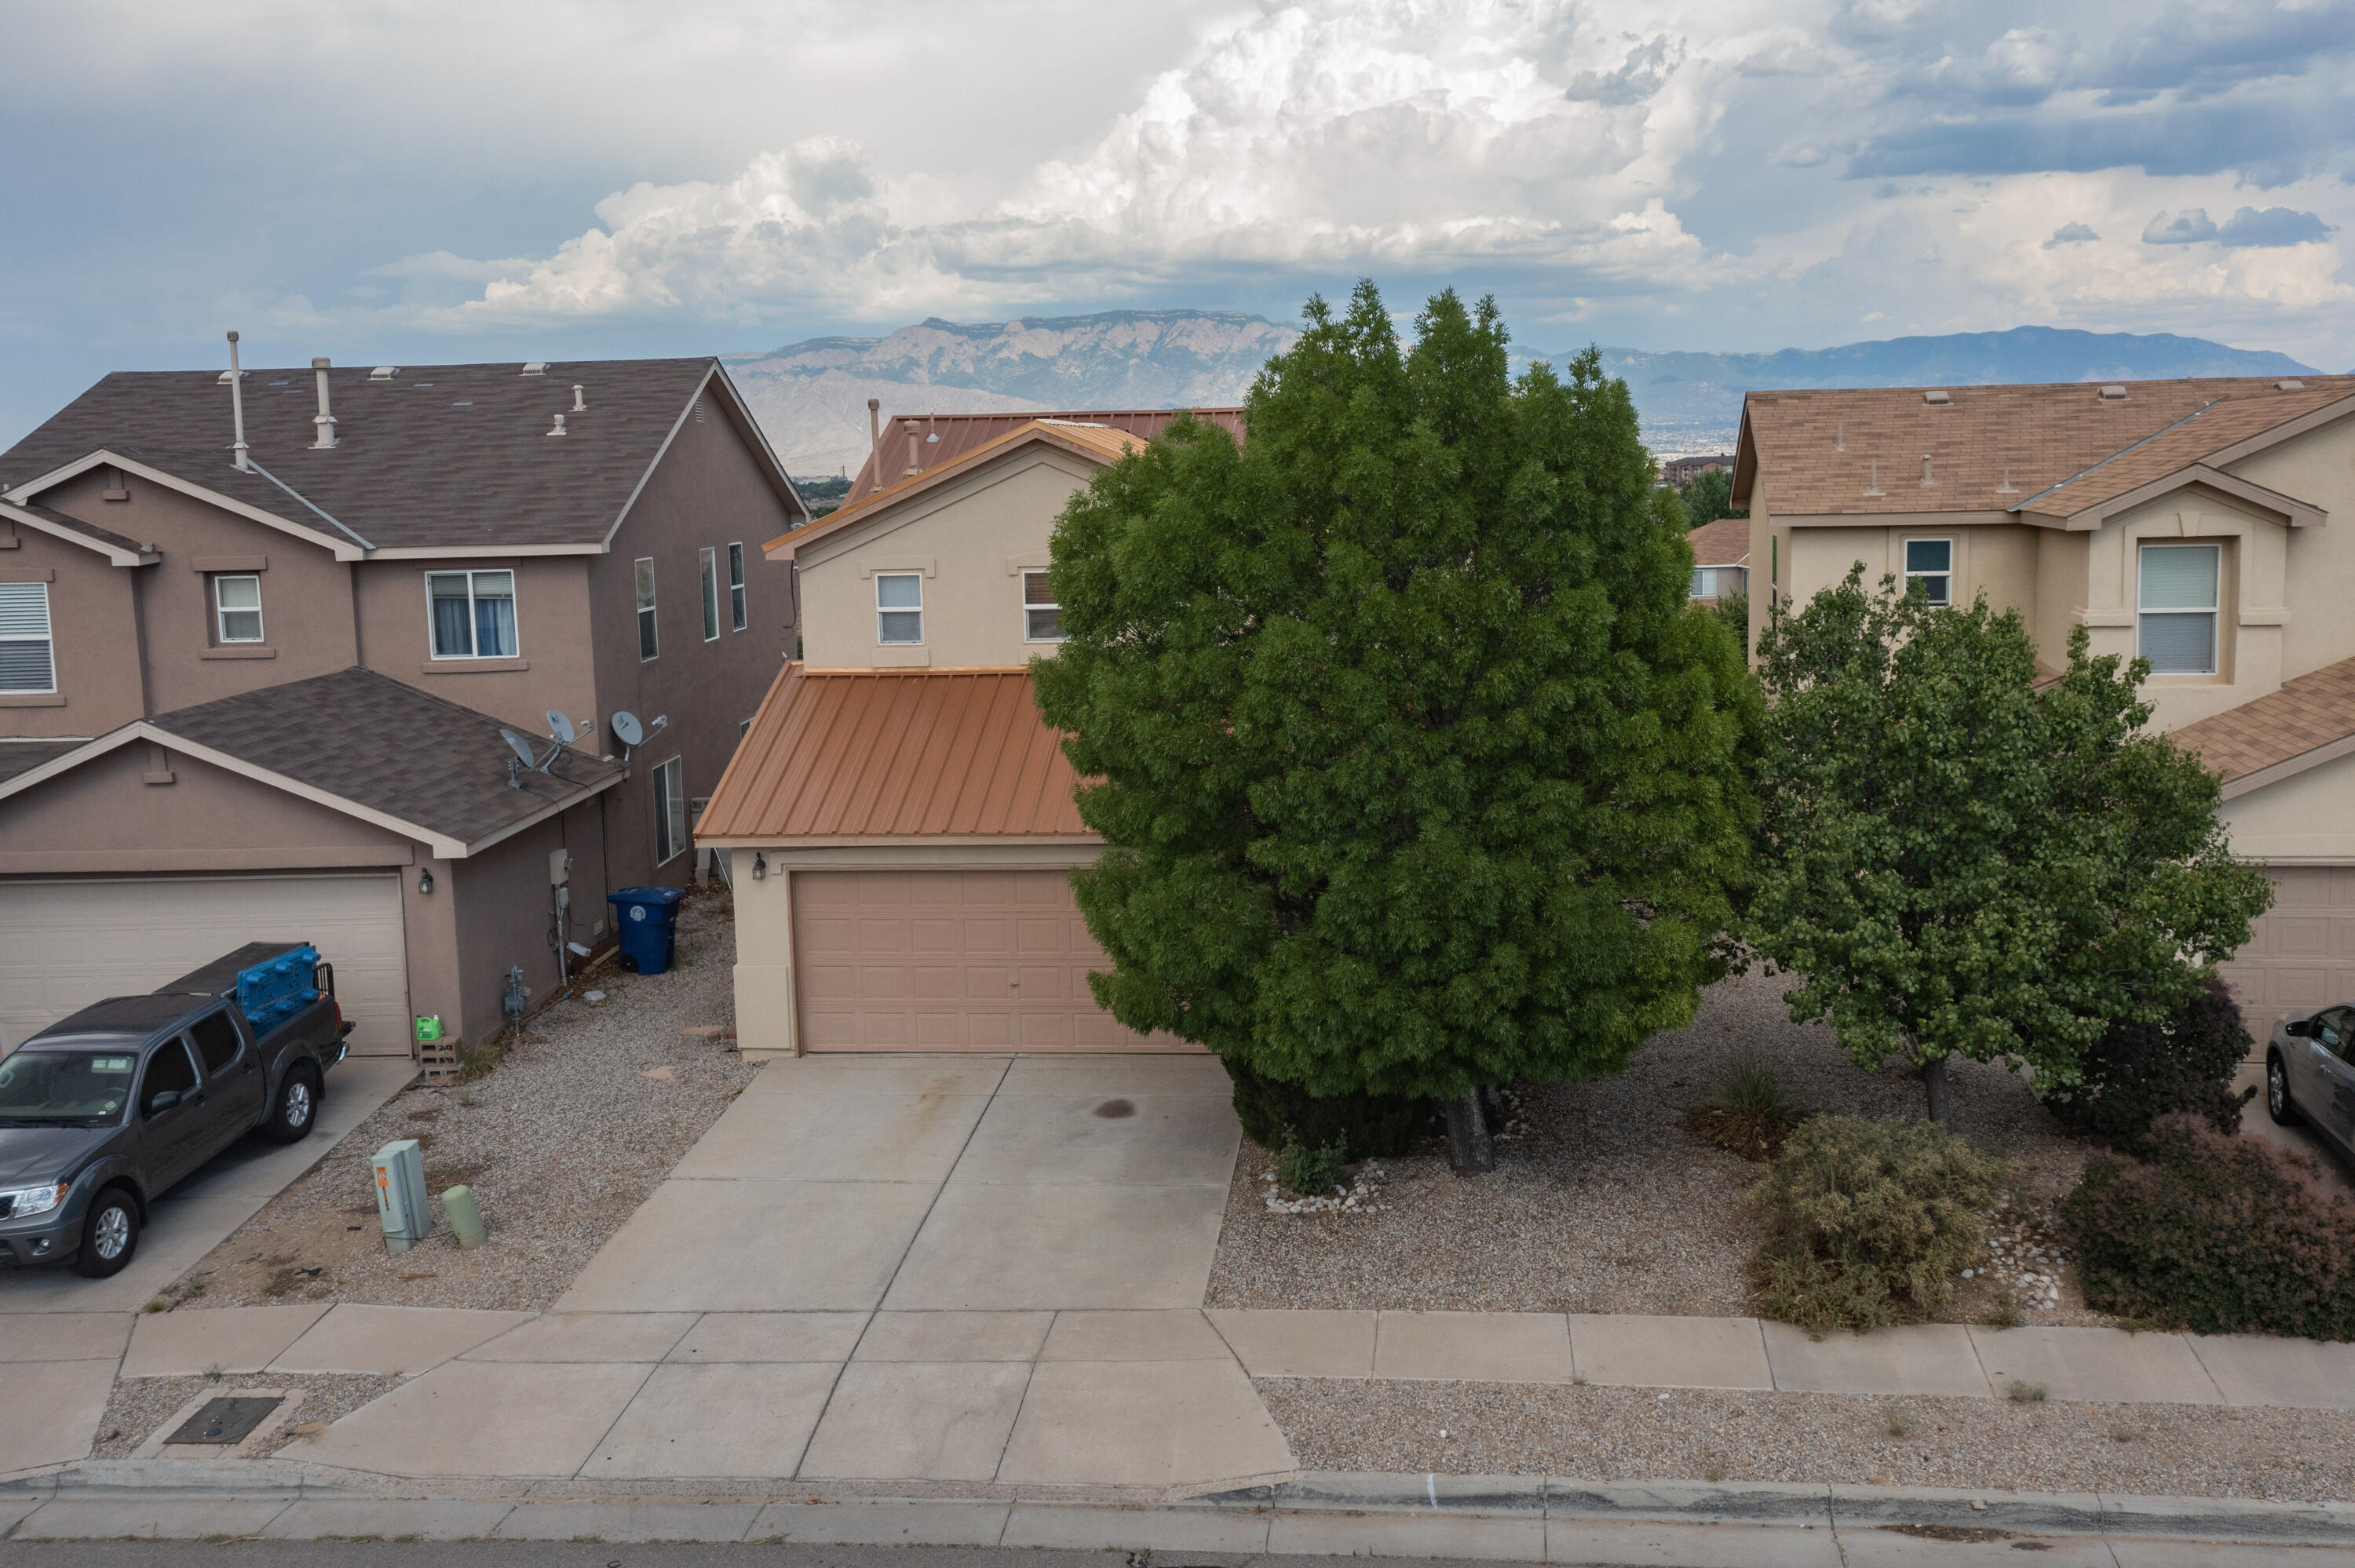 This is a wonderful opportunity to own a home on a premium lot with gorgeous mountain views. There is also No HOA, and No PID. 3 Bedrooms, 3 Bathrooms and Approximately 1639 Square Feet. Open and Bright Floor Plan, Gas Fireplace, Newer Copper Roof, Newer Water Heater, Large Master Bedroom, Downstairs Powder Bathroom, Additional Storage under stairs and ALL Appliances will convey. Large Backyard is partially landscaped with gravel and is a blank canvas for your imagination with Block walls and a Fenced Dog Run/Outdoor Storage Area. This home is ready for you to call home. There is also a beautiful park just right down the street with other larger parks nearby. Original Owner/Broker. Home Warranty will be supplied.